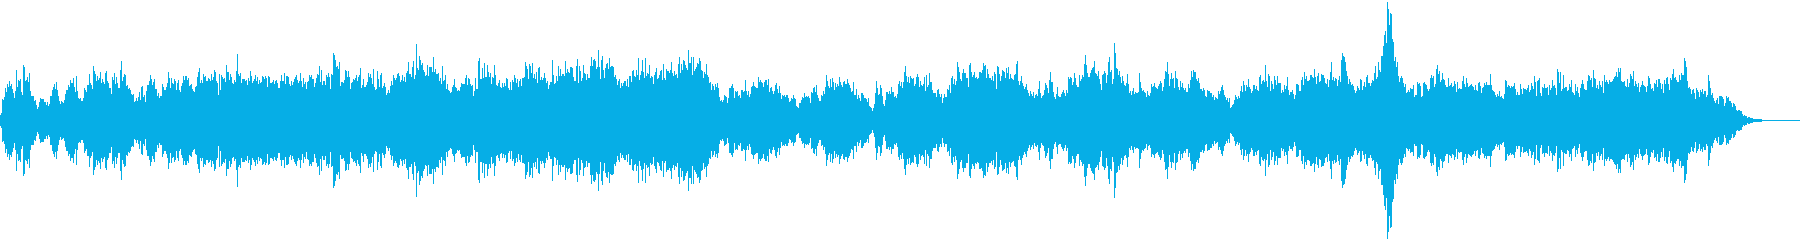 Fantastic synthesizer ambient music's reproduced waveform